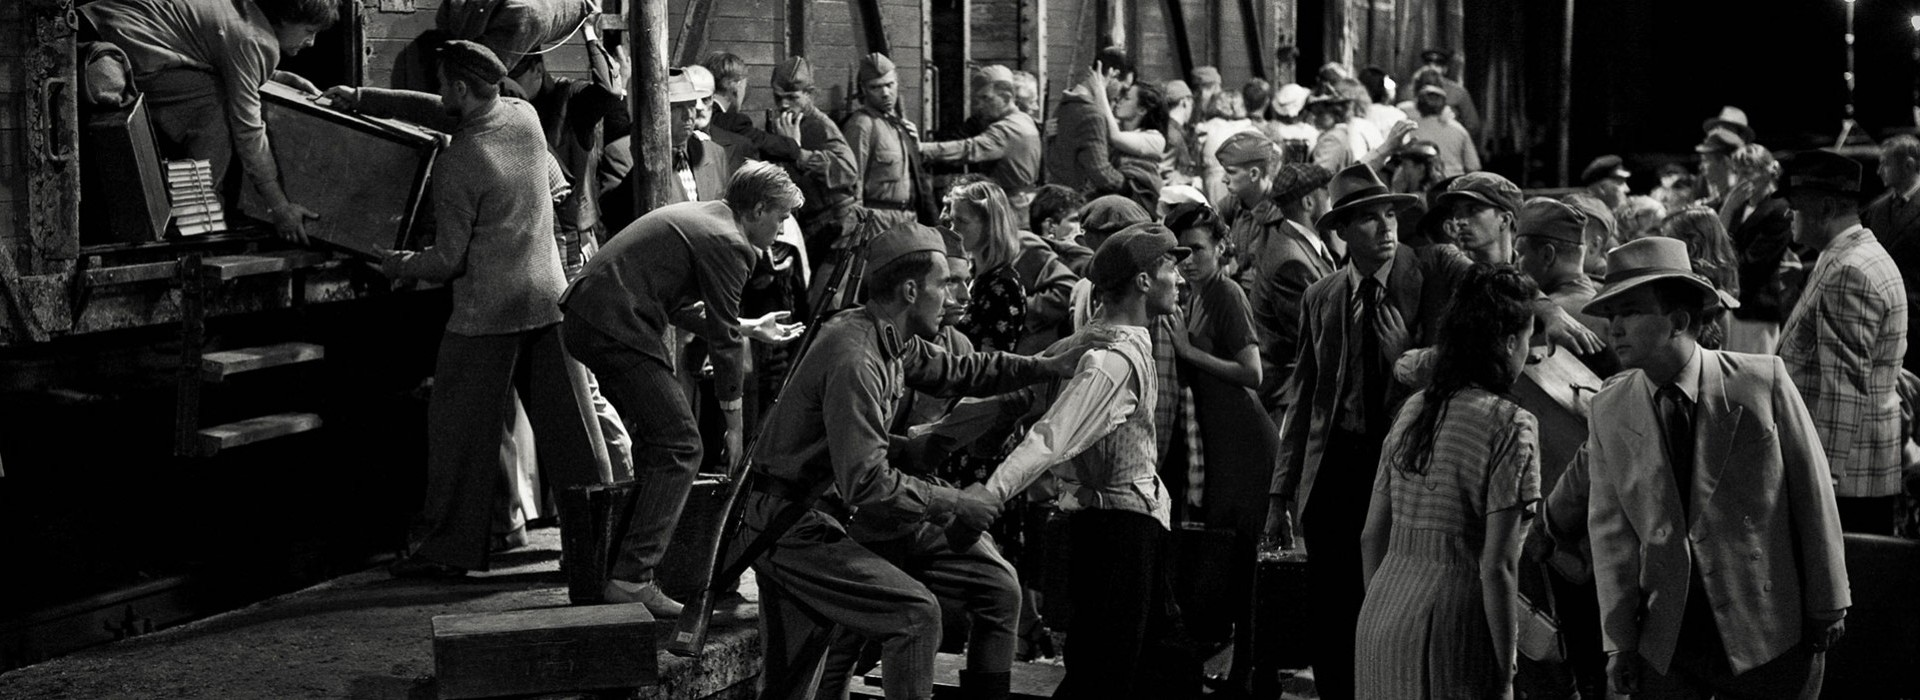 Remembering 1941: how the Baltic states are confronting their deportation trauma on film